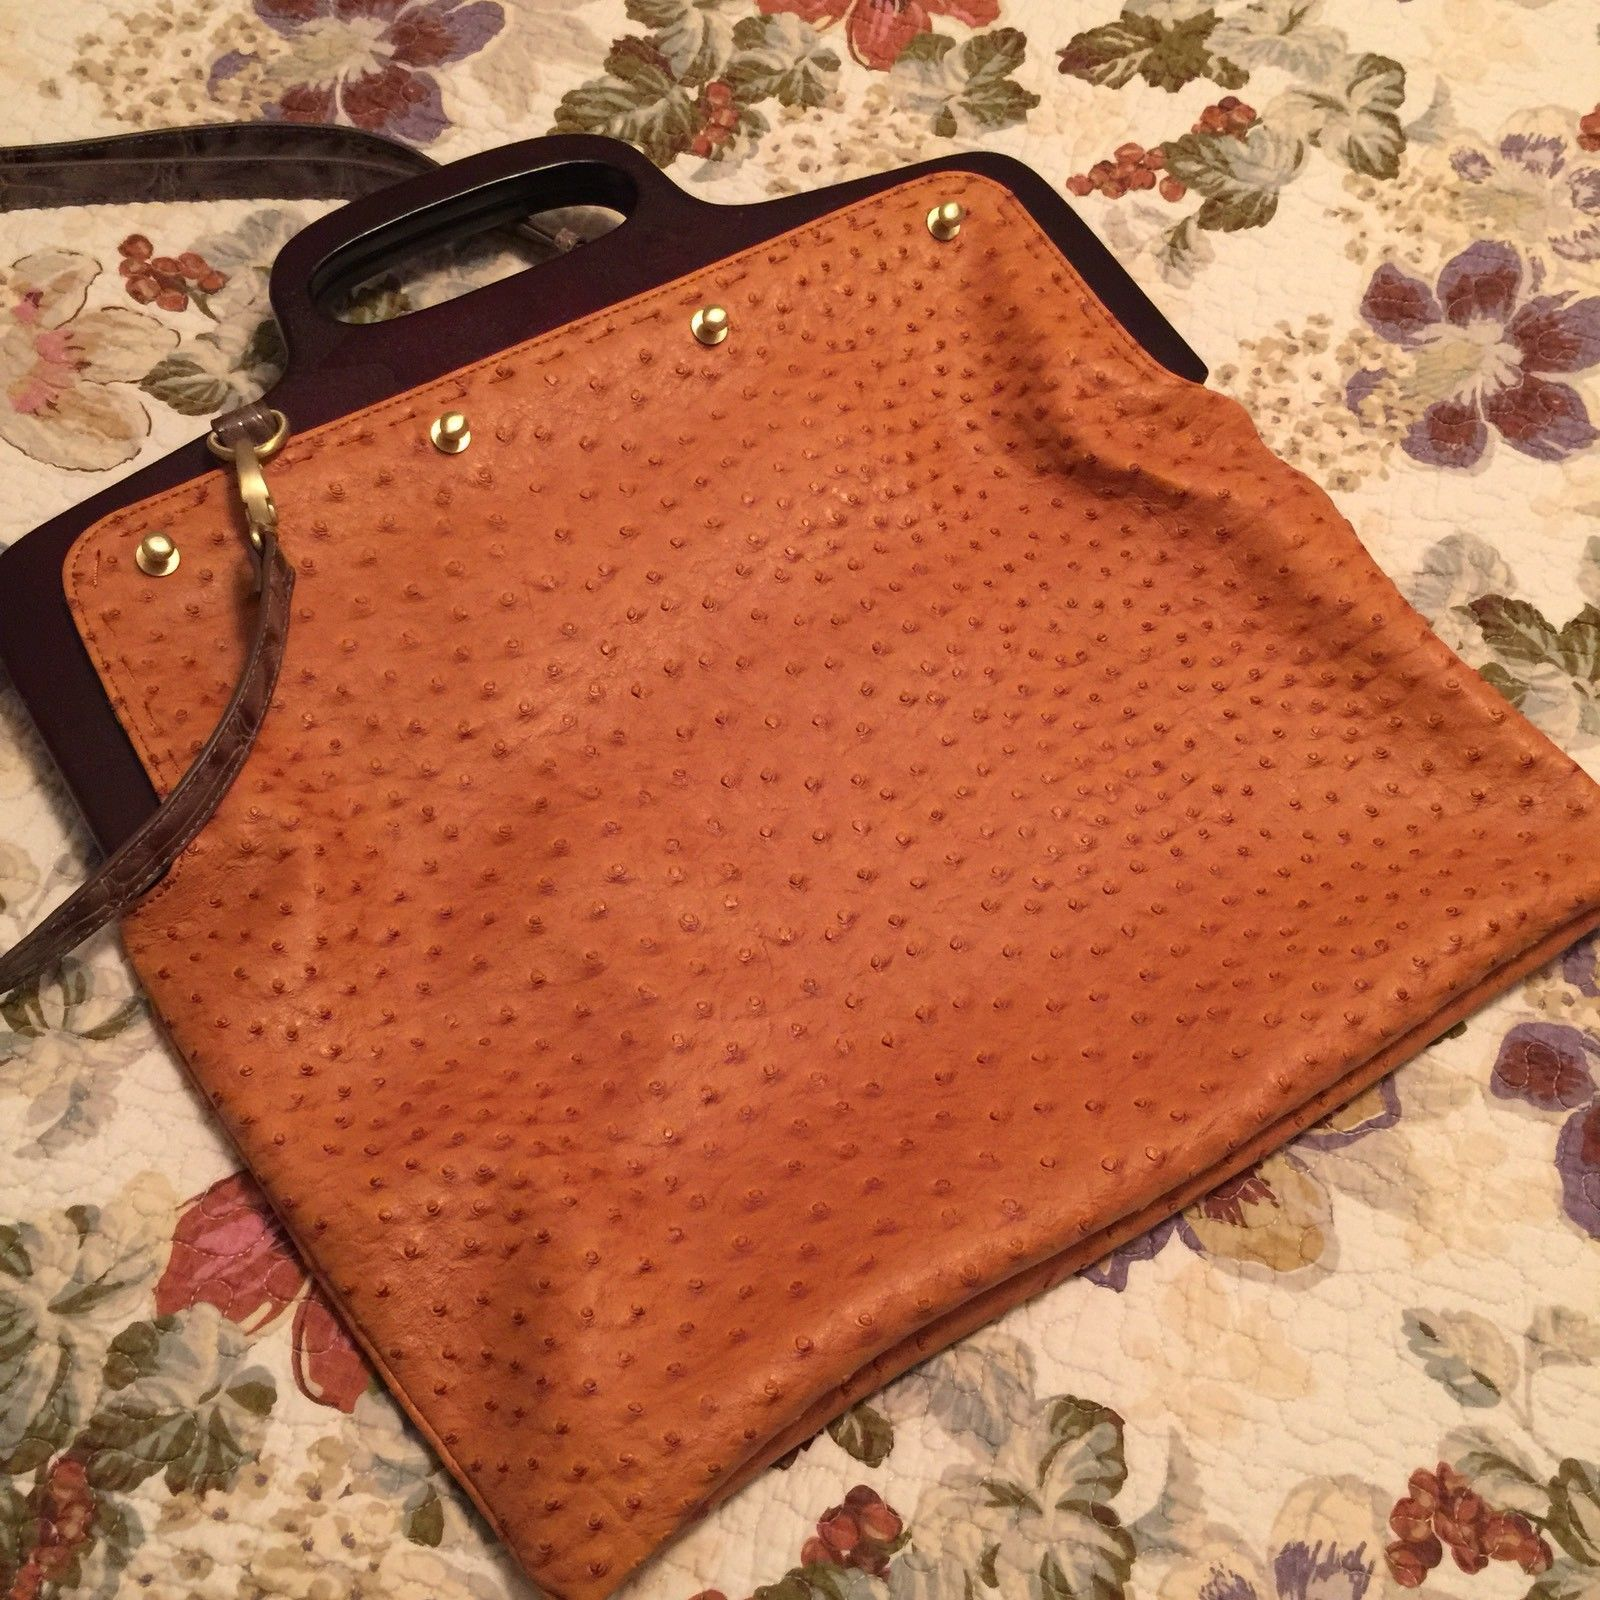 1f13041abd76 Dee Ocleppo Hilfiger Monaco Tote Ostrich and 50 similar items